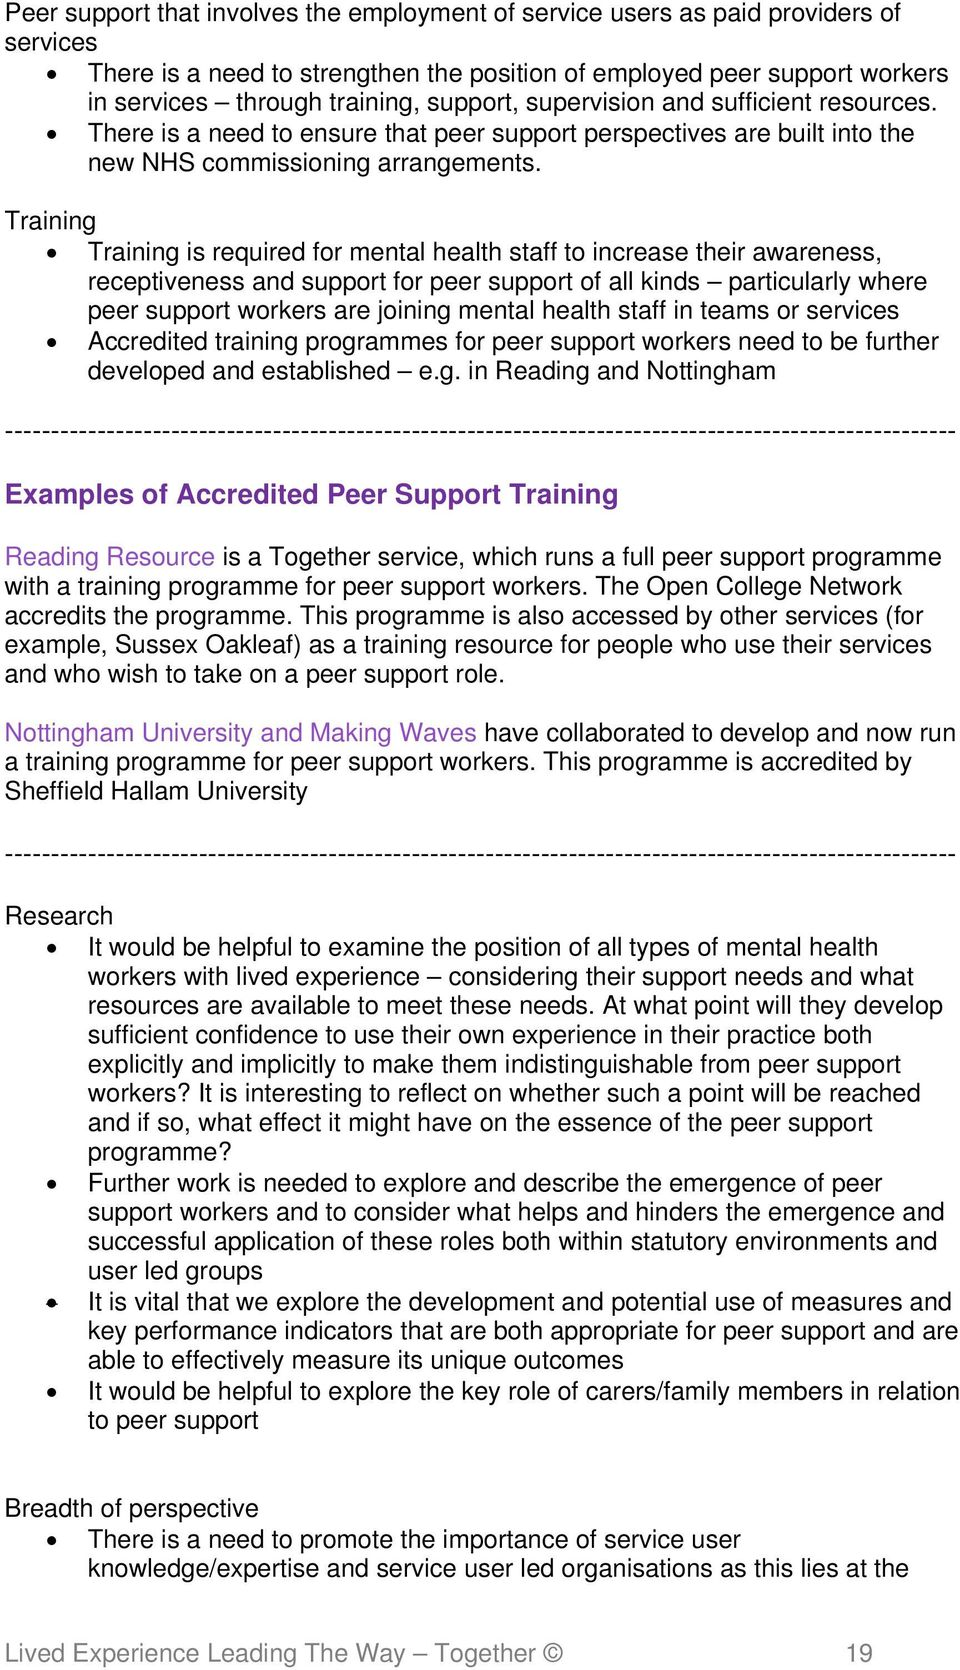 Training Training is required for mental health staff to increase their awareness, receptiveness and support for peer support of all kinds particularly where peer support workers are joining mental